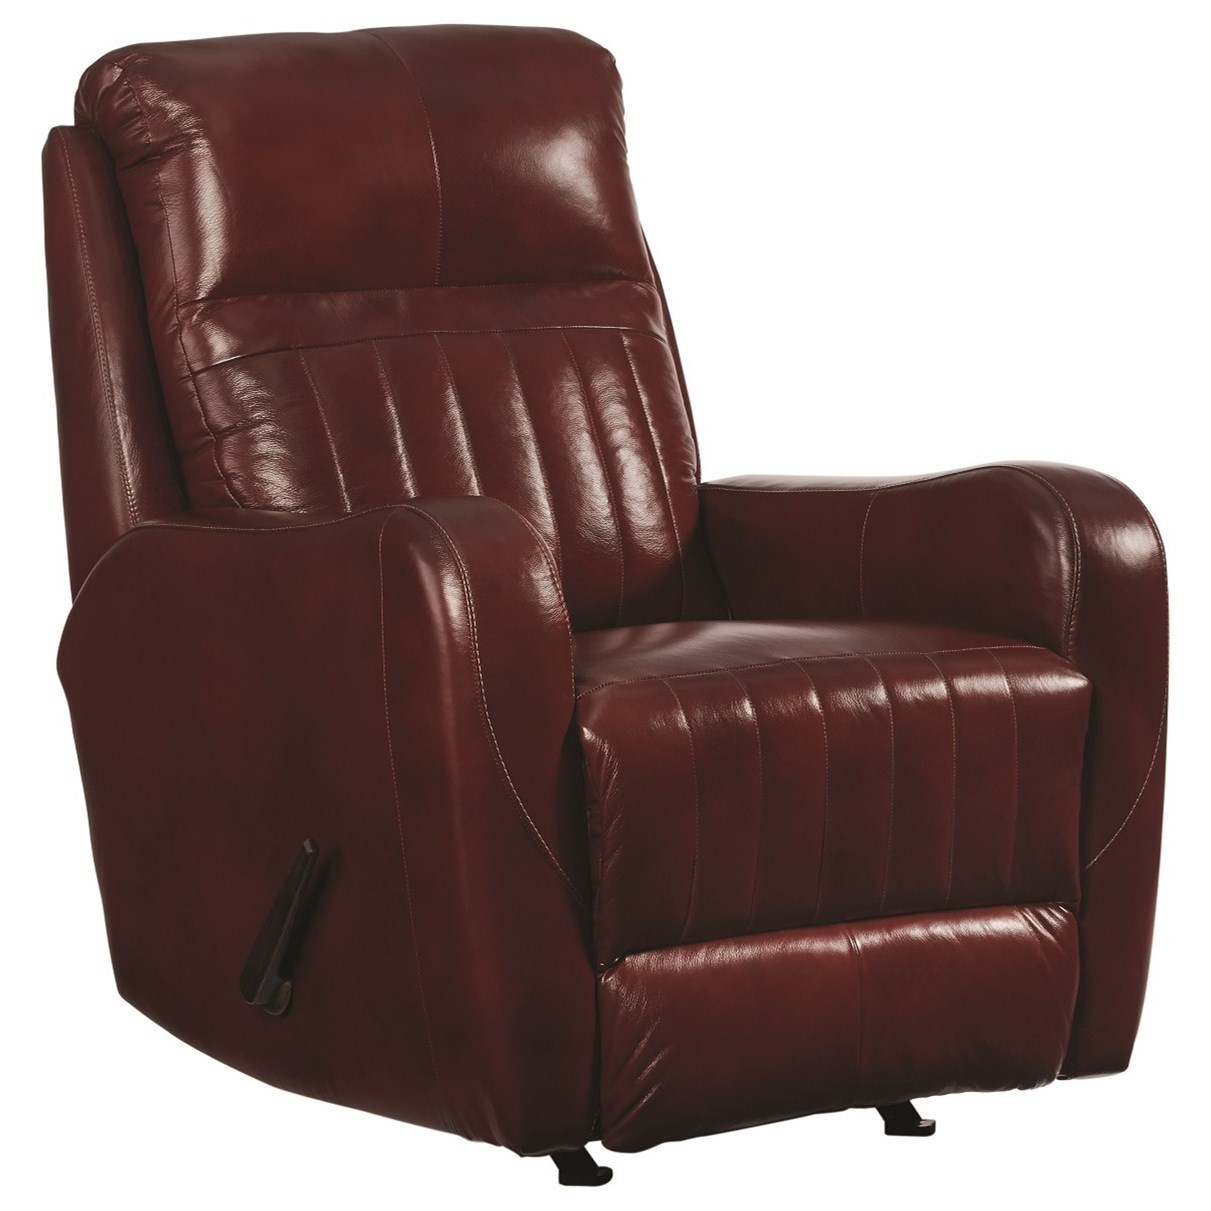 Racetrack Wall Hugger Recliner by Southern Motion at Bullard Furniture